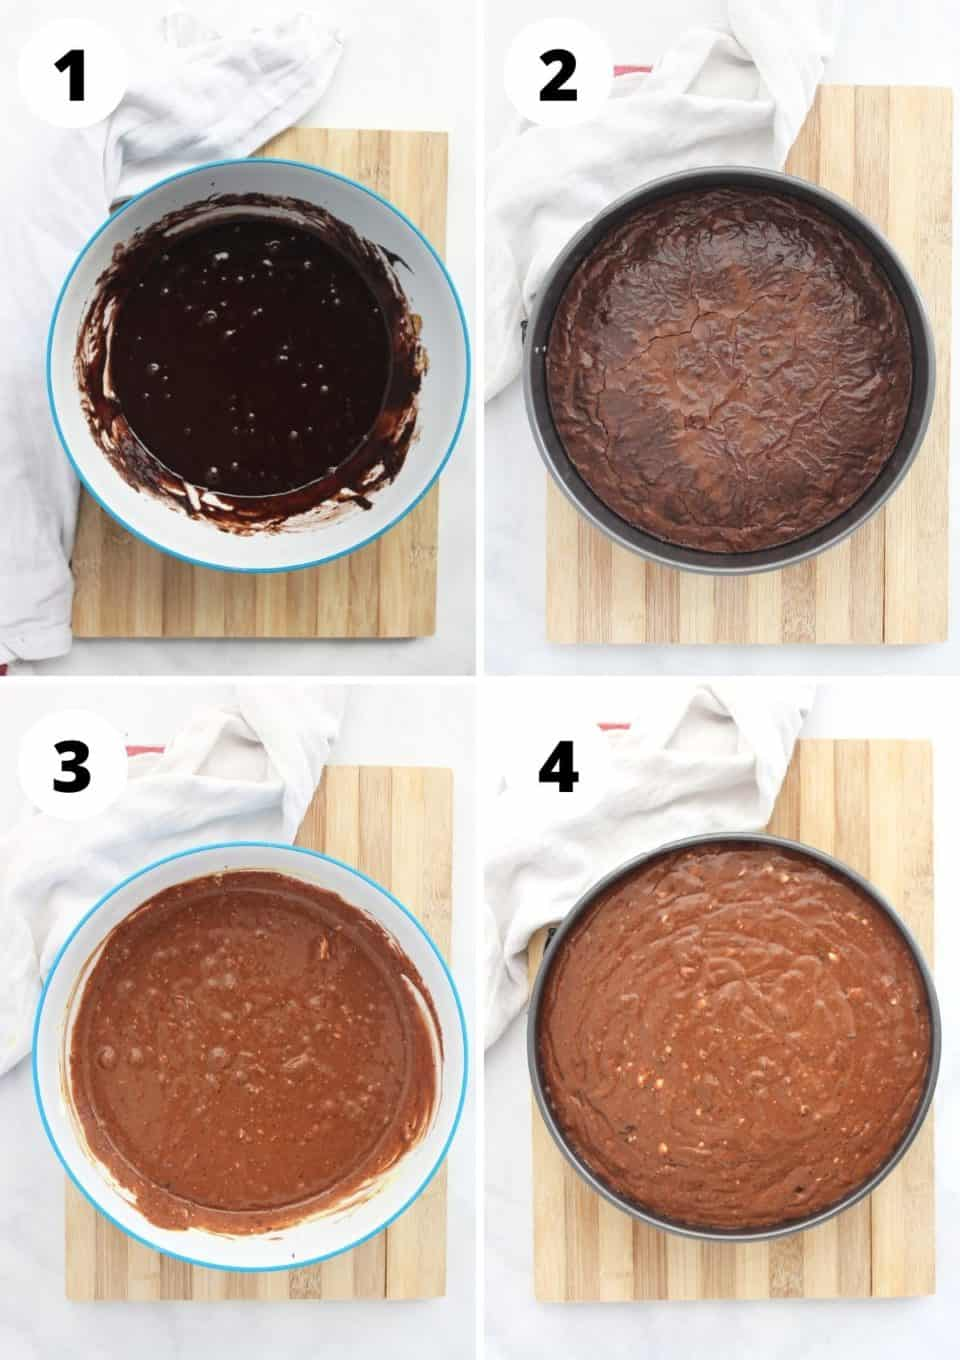 Four process shots to show how to make the cheesecake before baking.